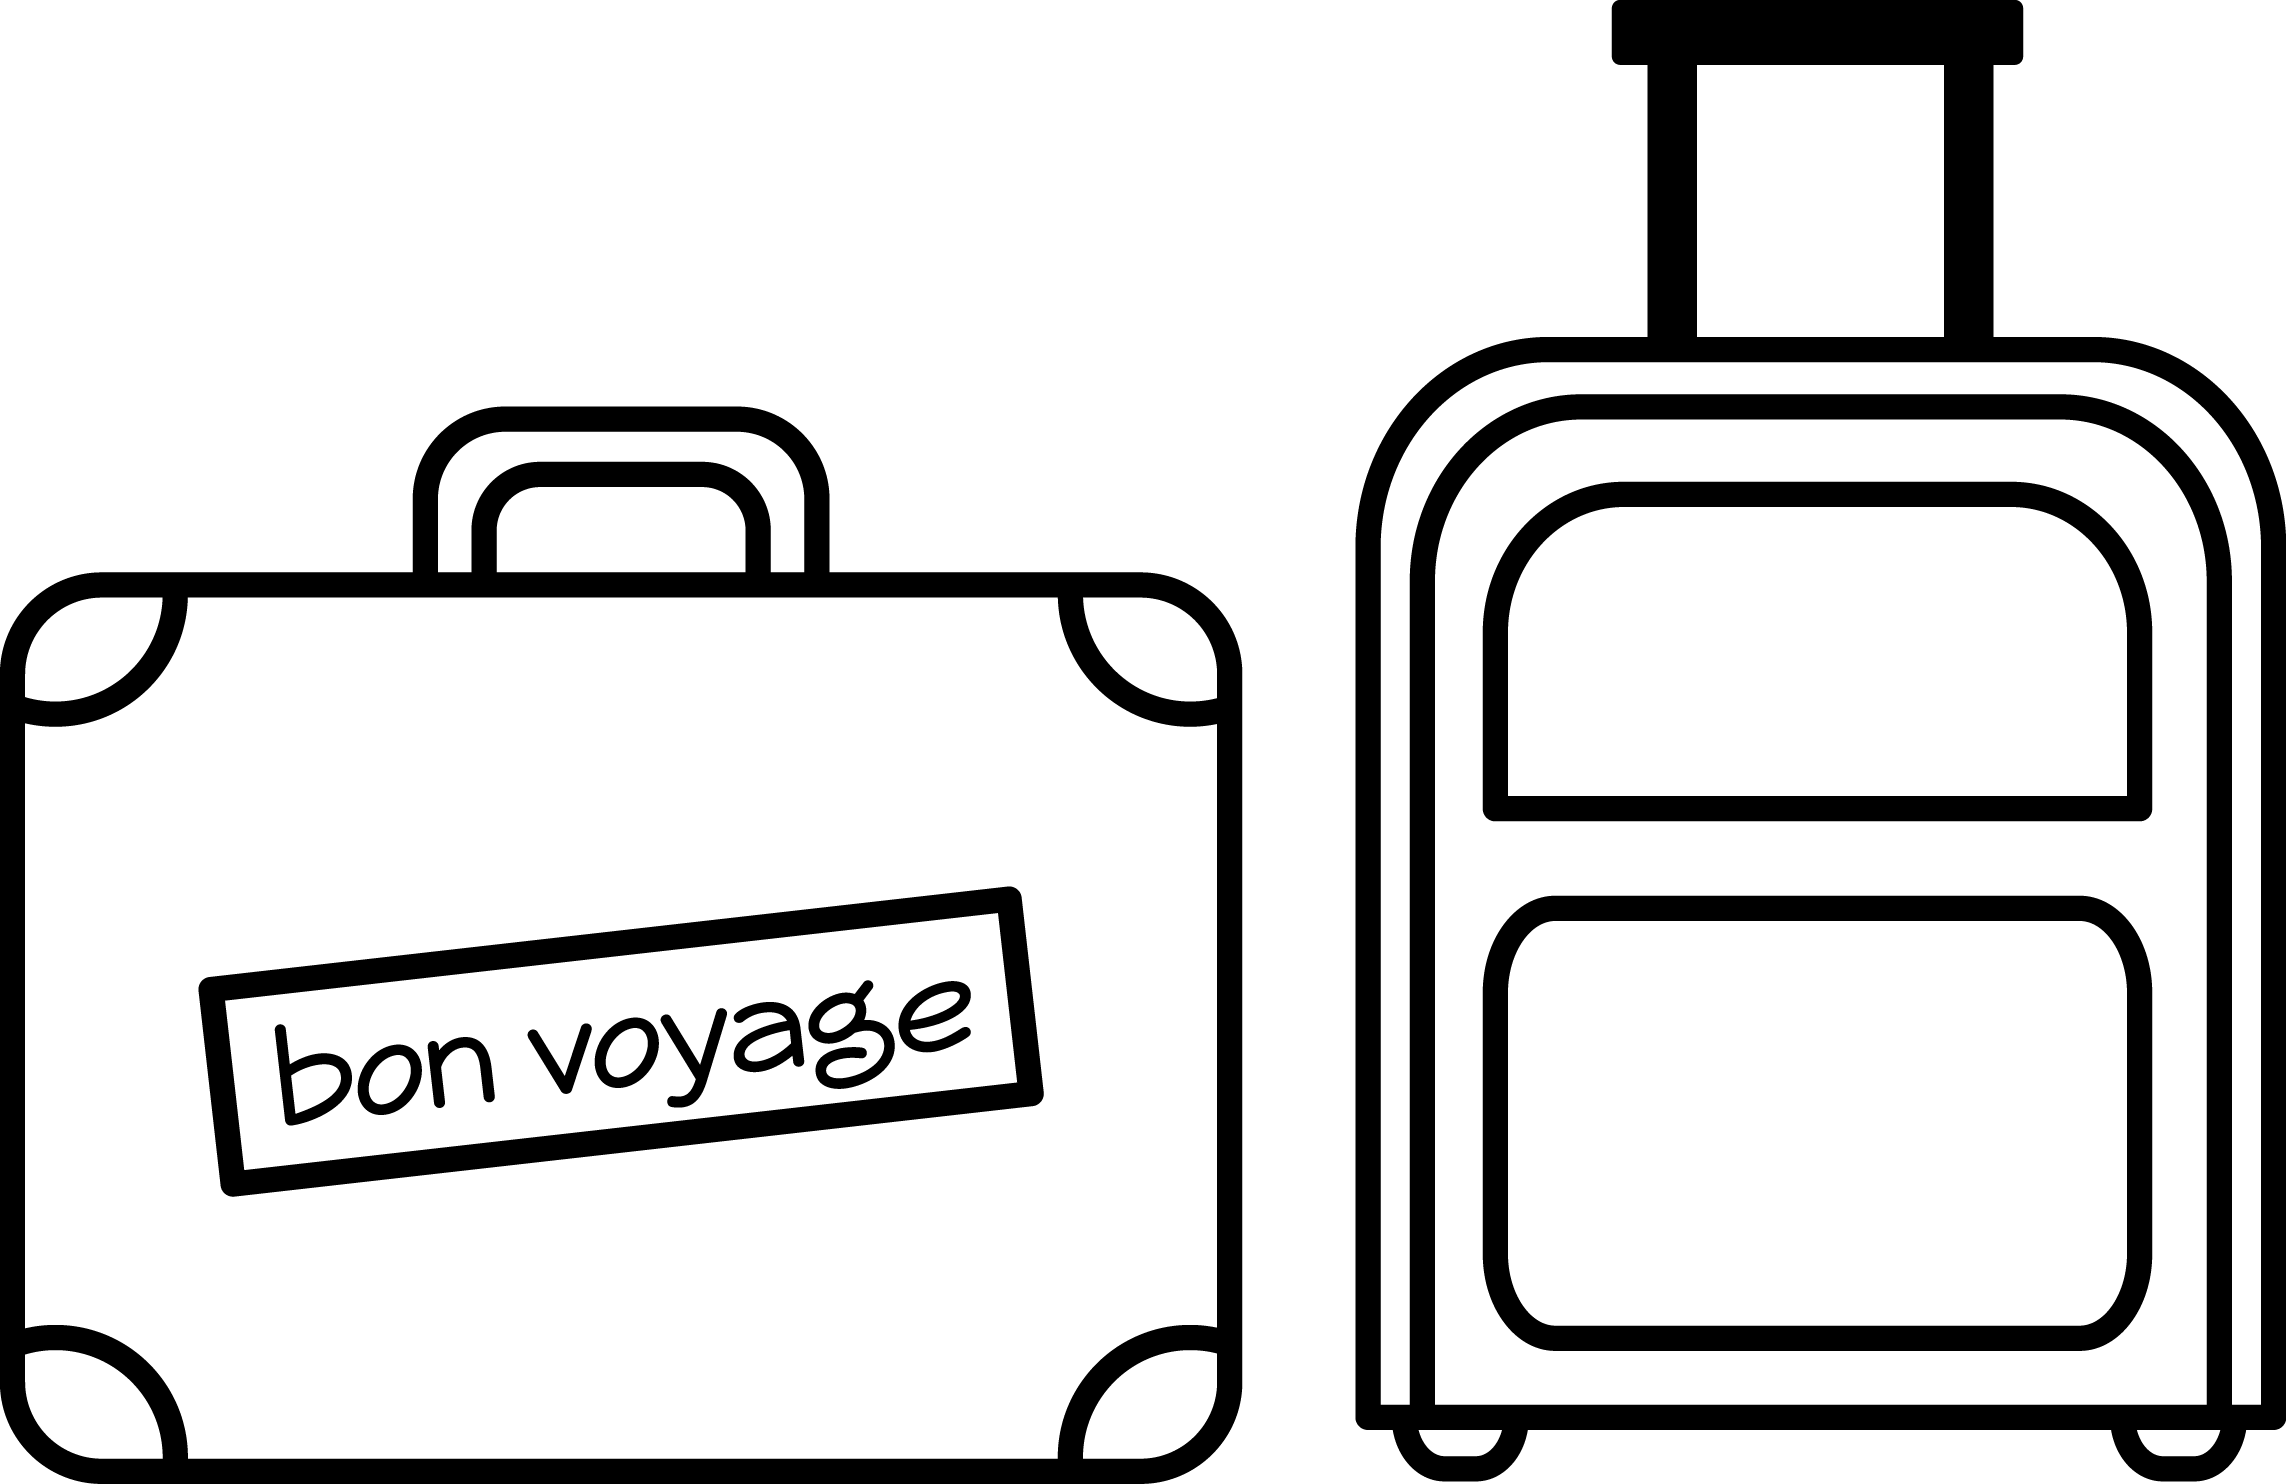 Luggage clipart stamp. Suitcase bags